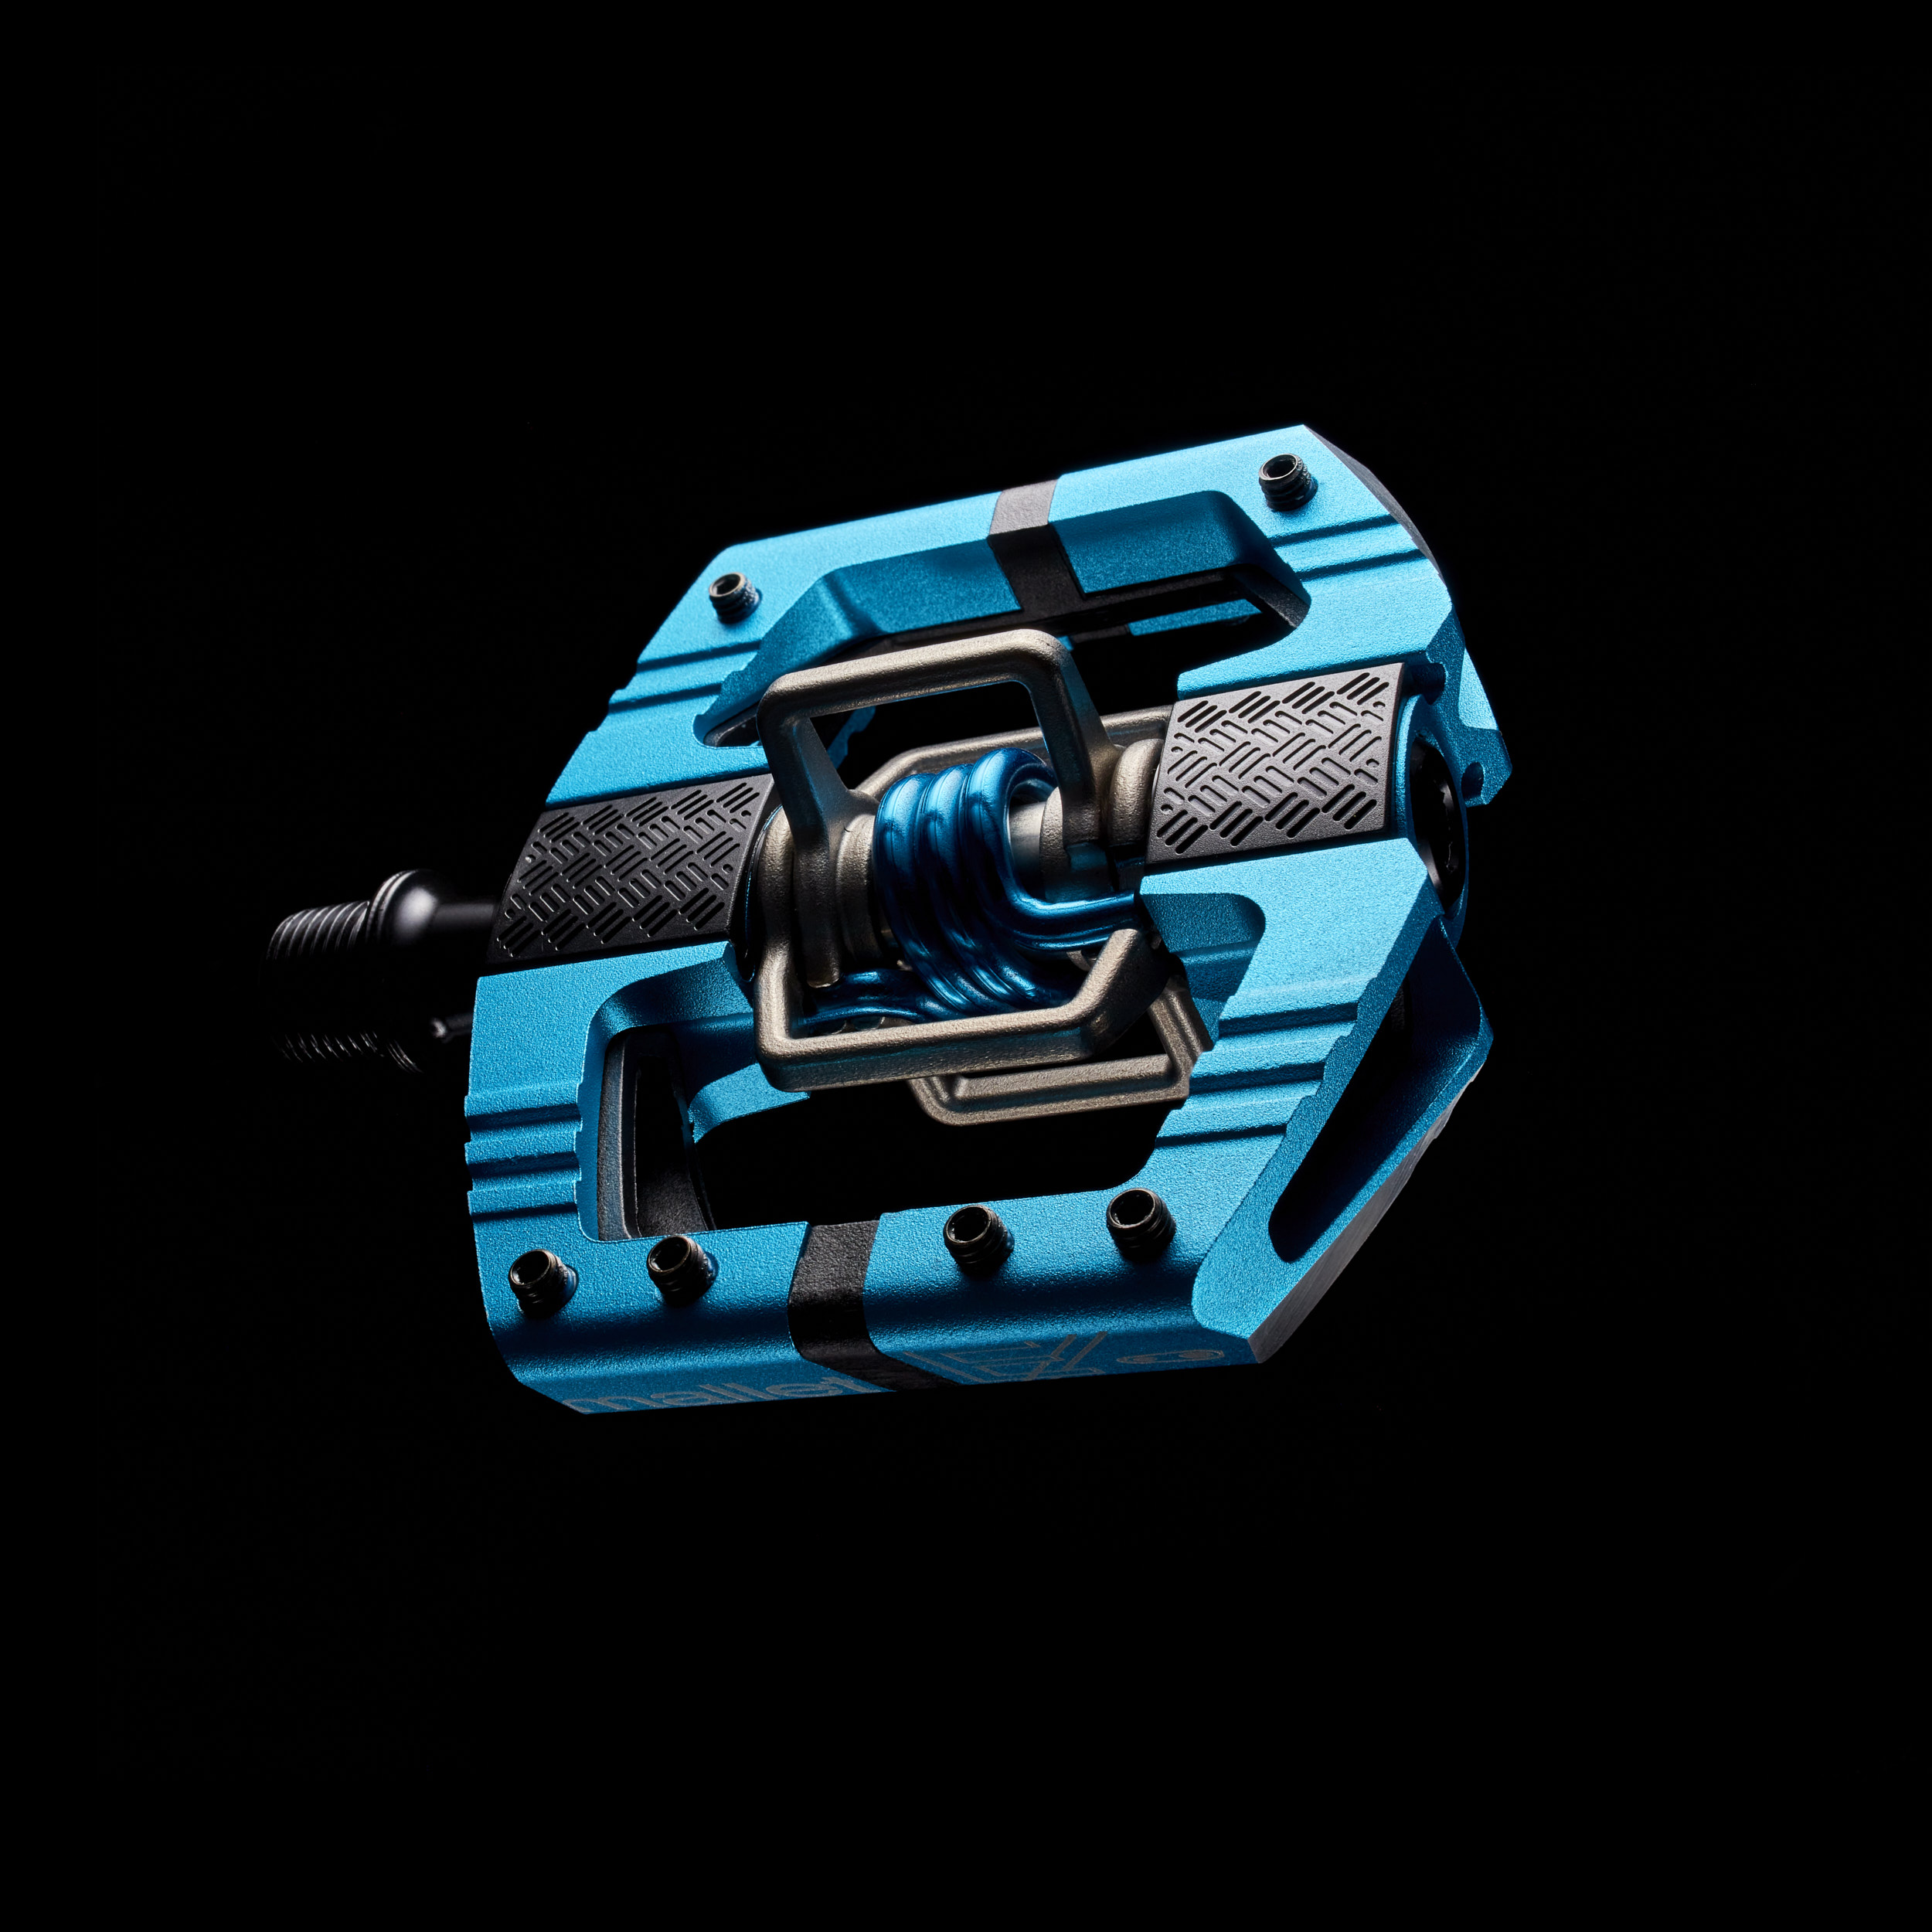 Crank Brothers Mallet Pedal with black background in studio.